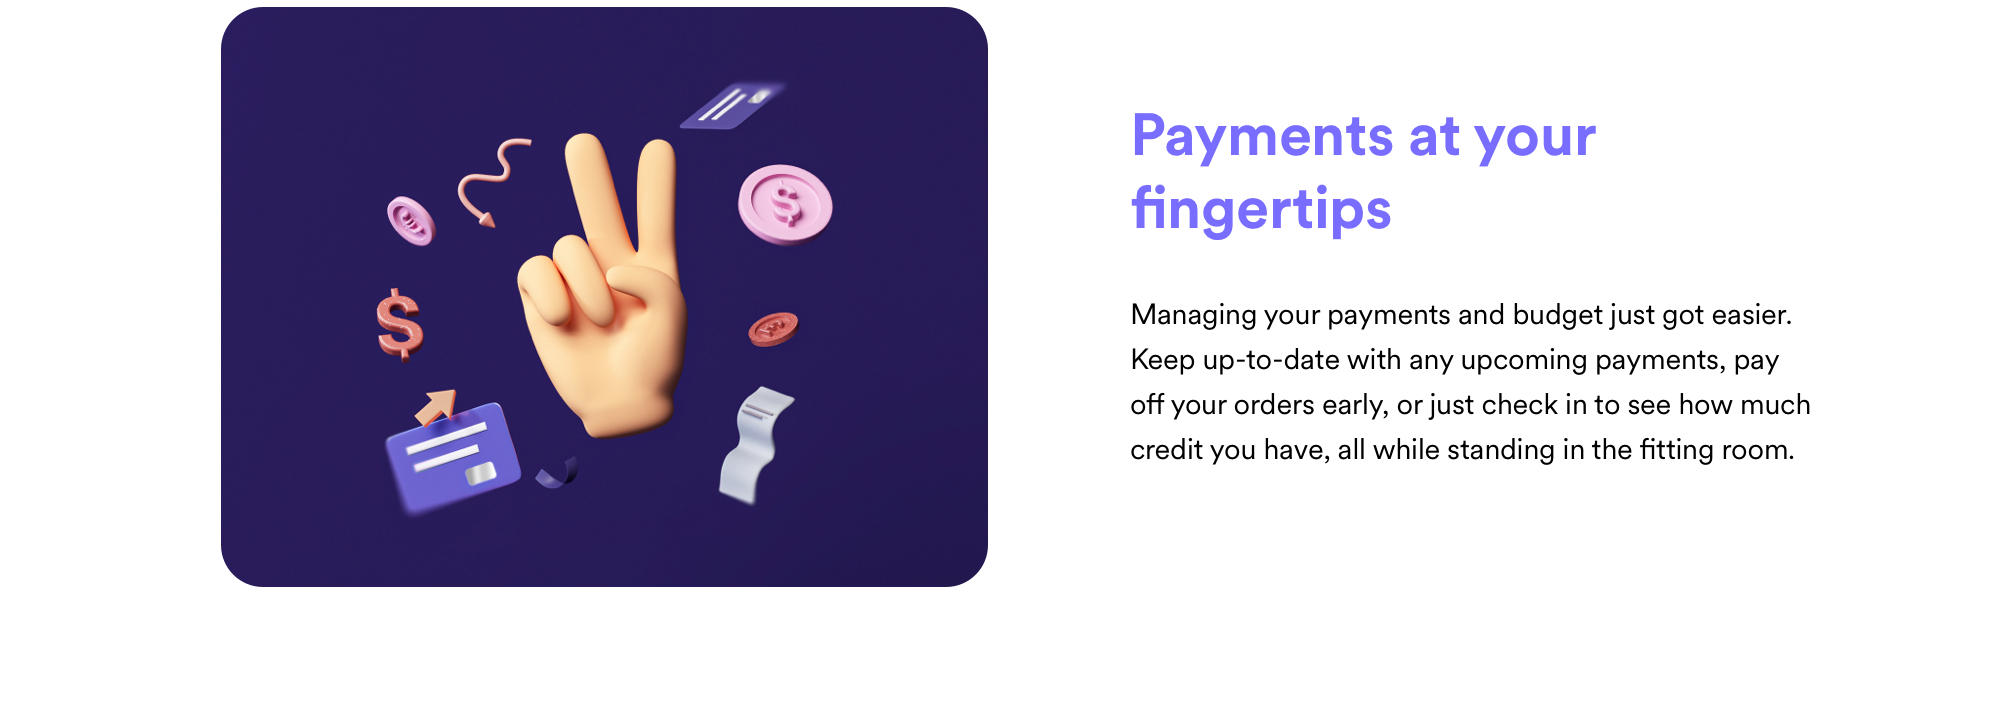 Payments at your fingertips